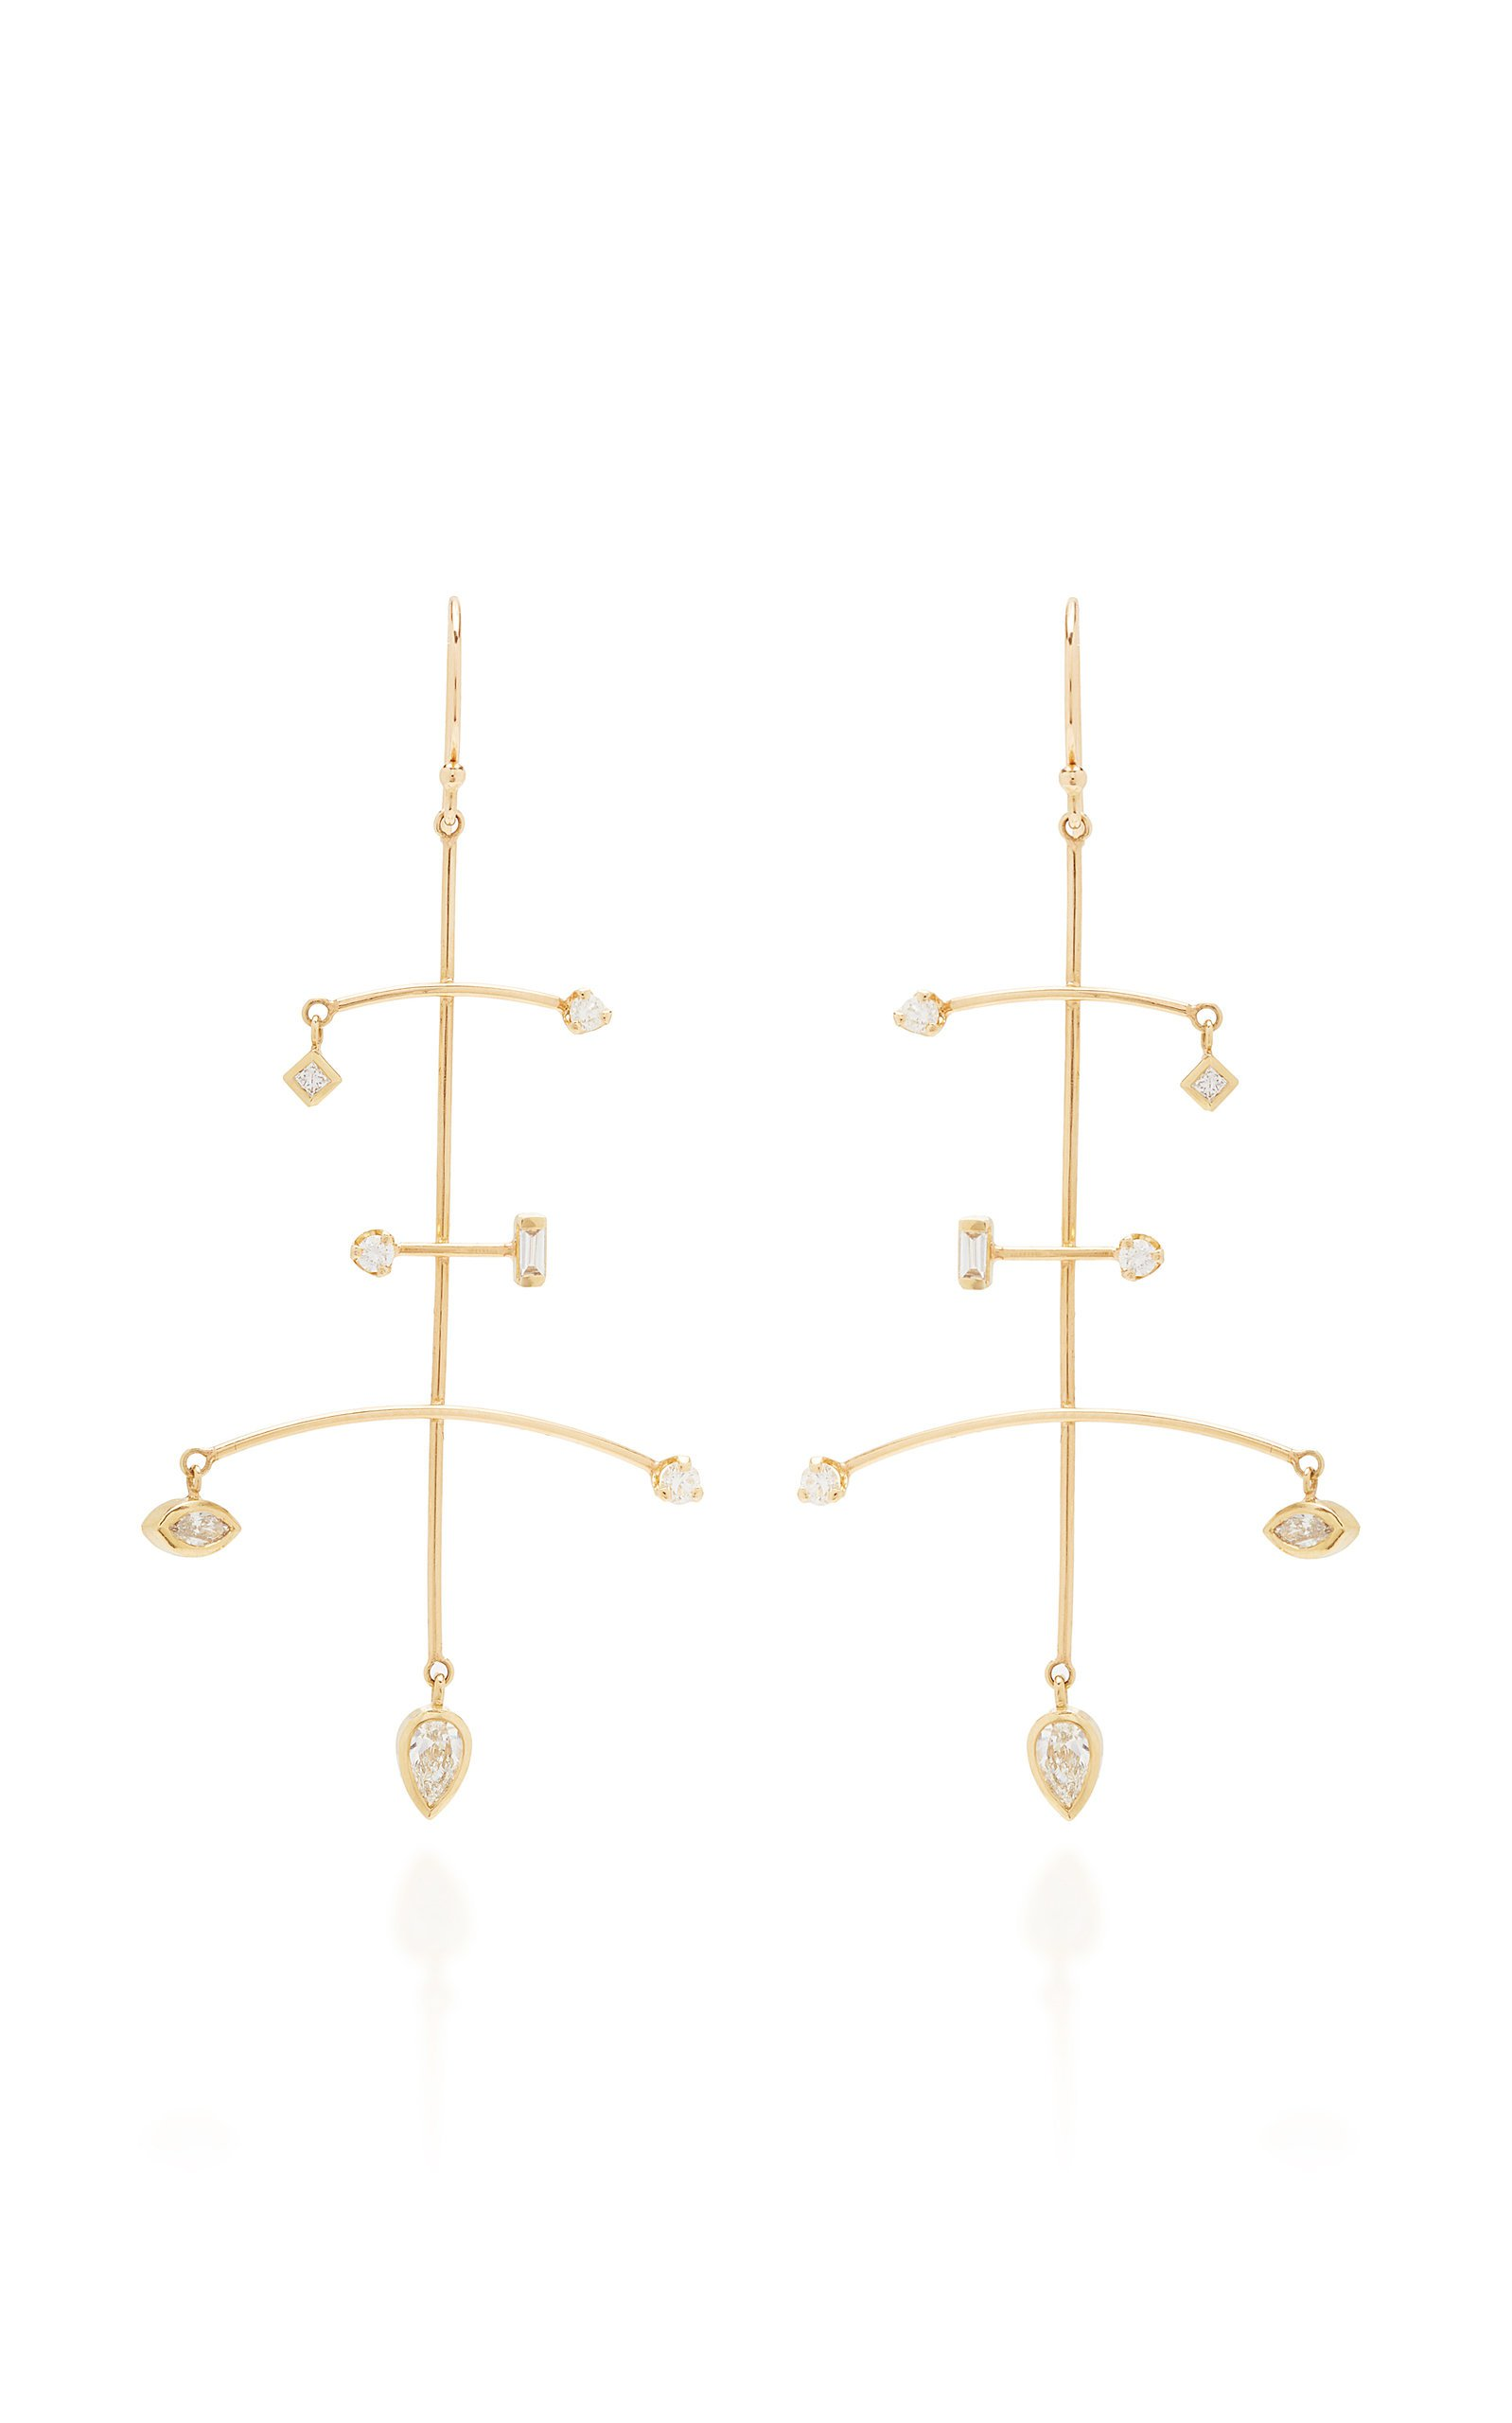 Zoe Chicco 14K Large Mobile Earring With Mixed Fancy Cut Diamonds